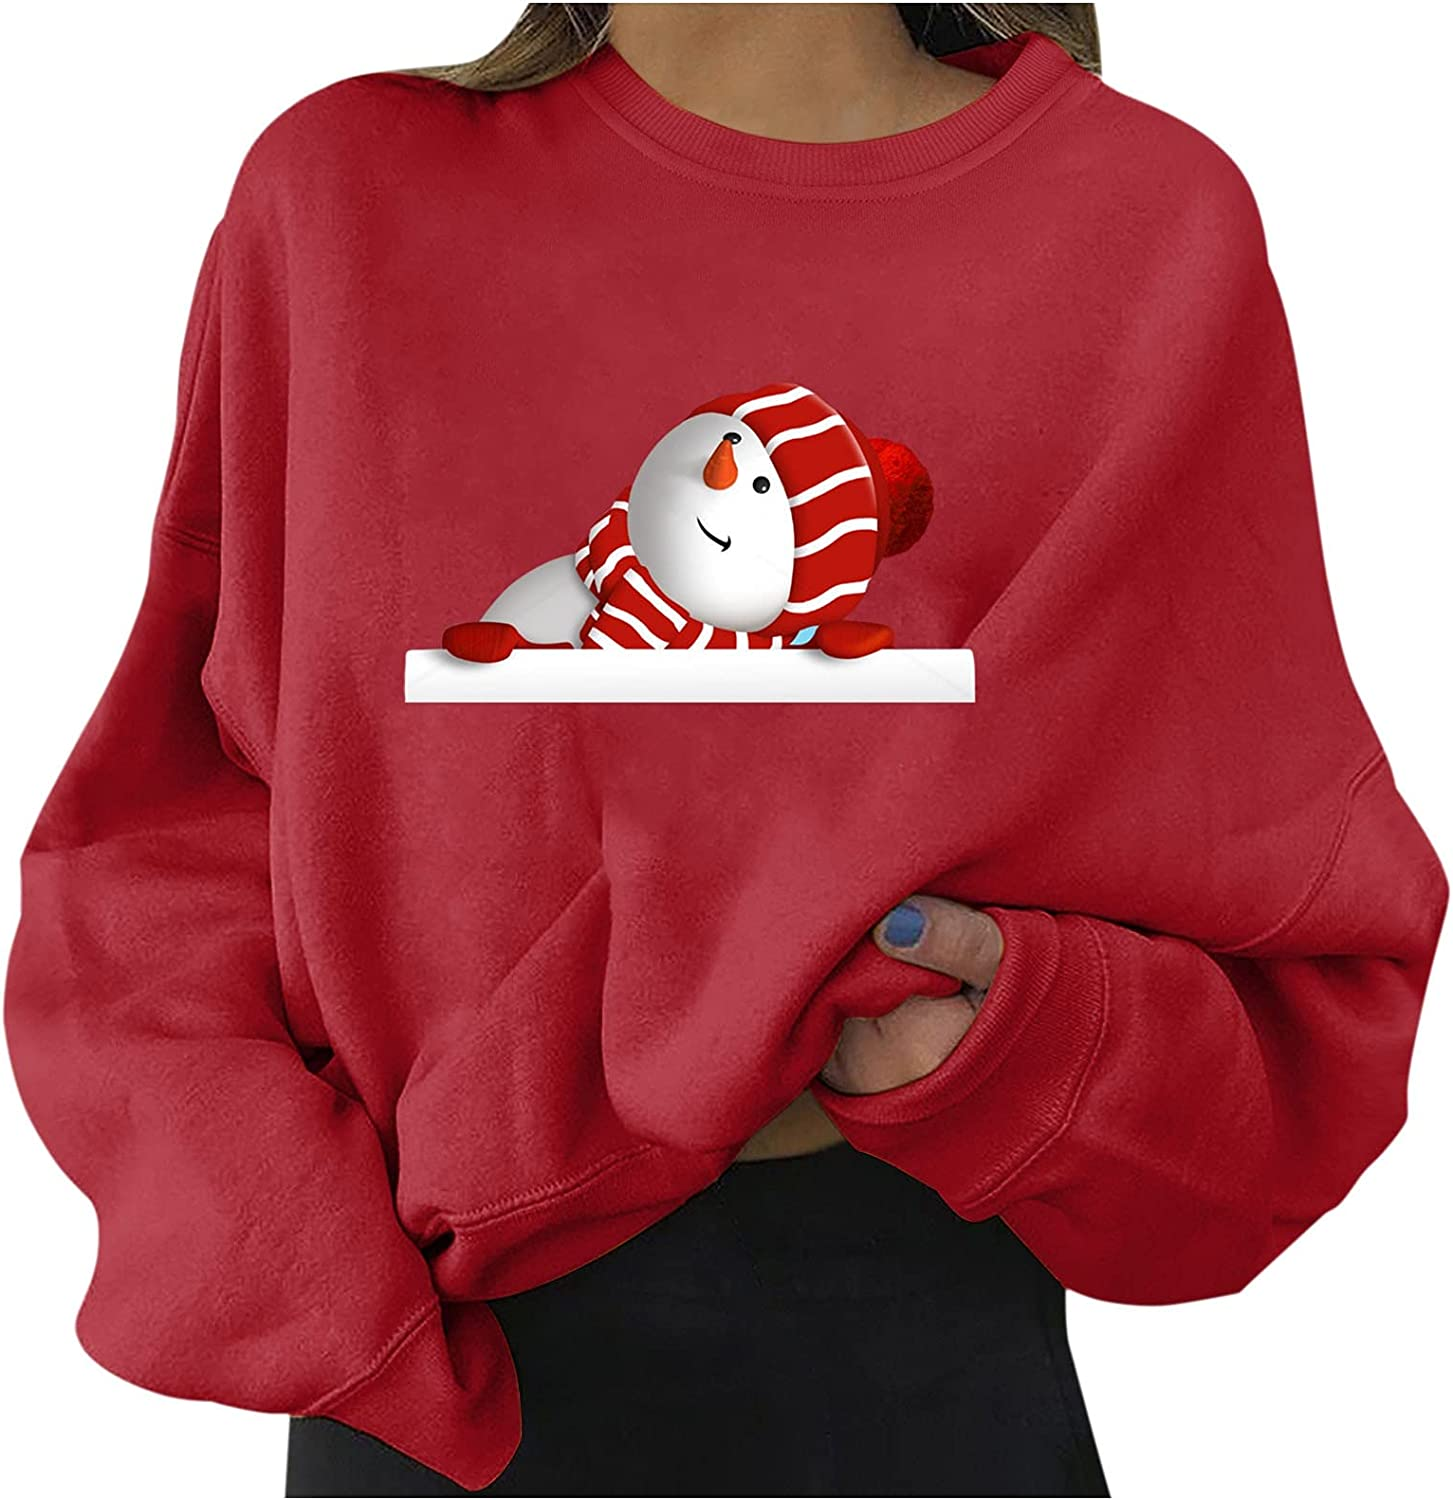 Whyeasy Womens Christmas Lightweight Oversized Sweatshirts Crewneck Pullover Casual Xmas Long Sleeve Tops Loose Fit